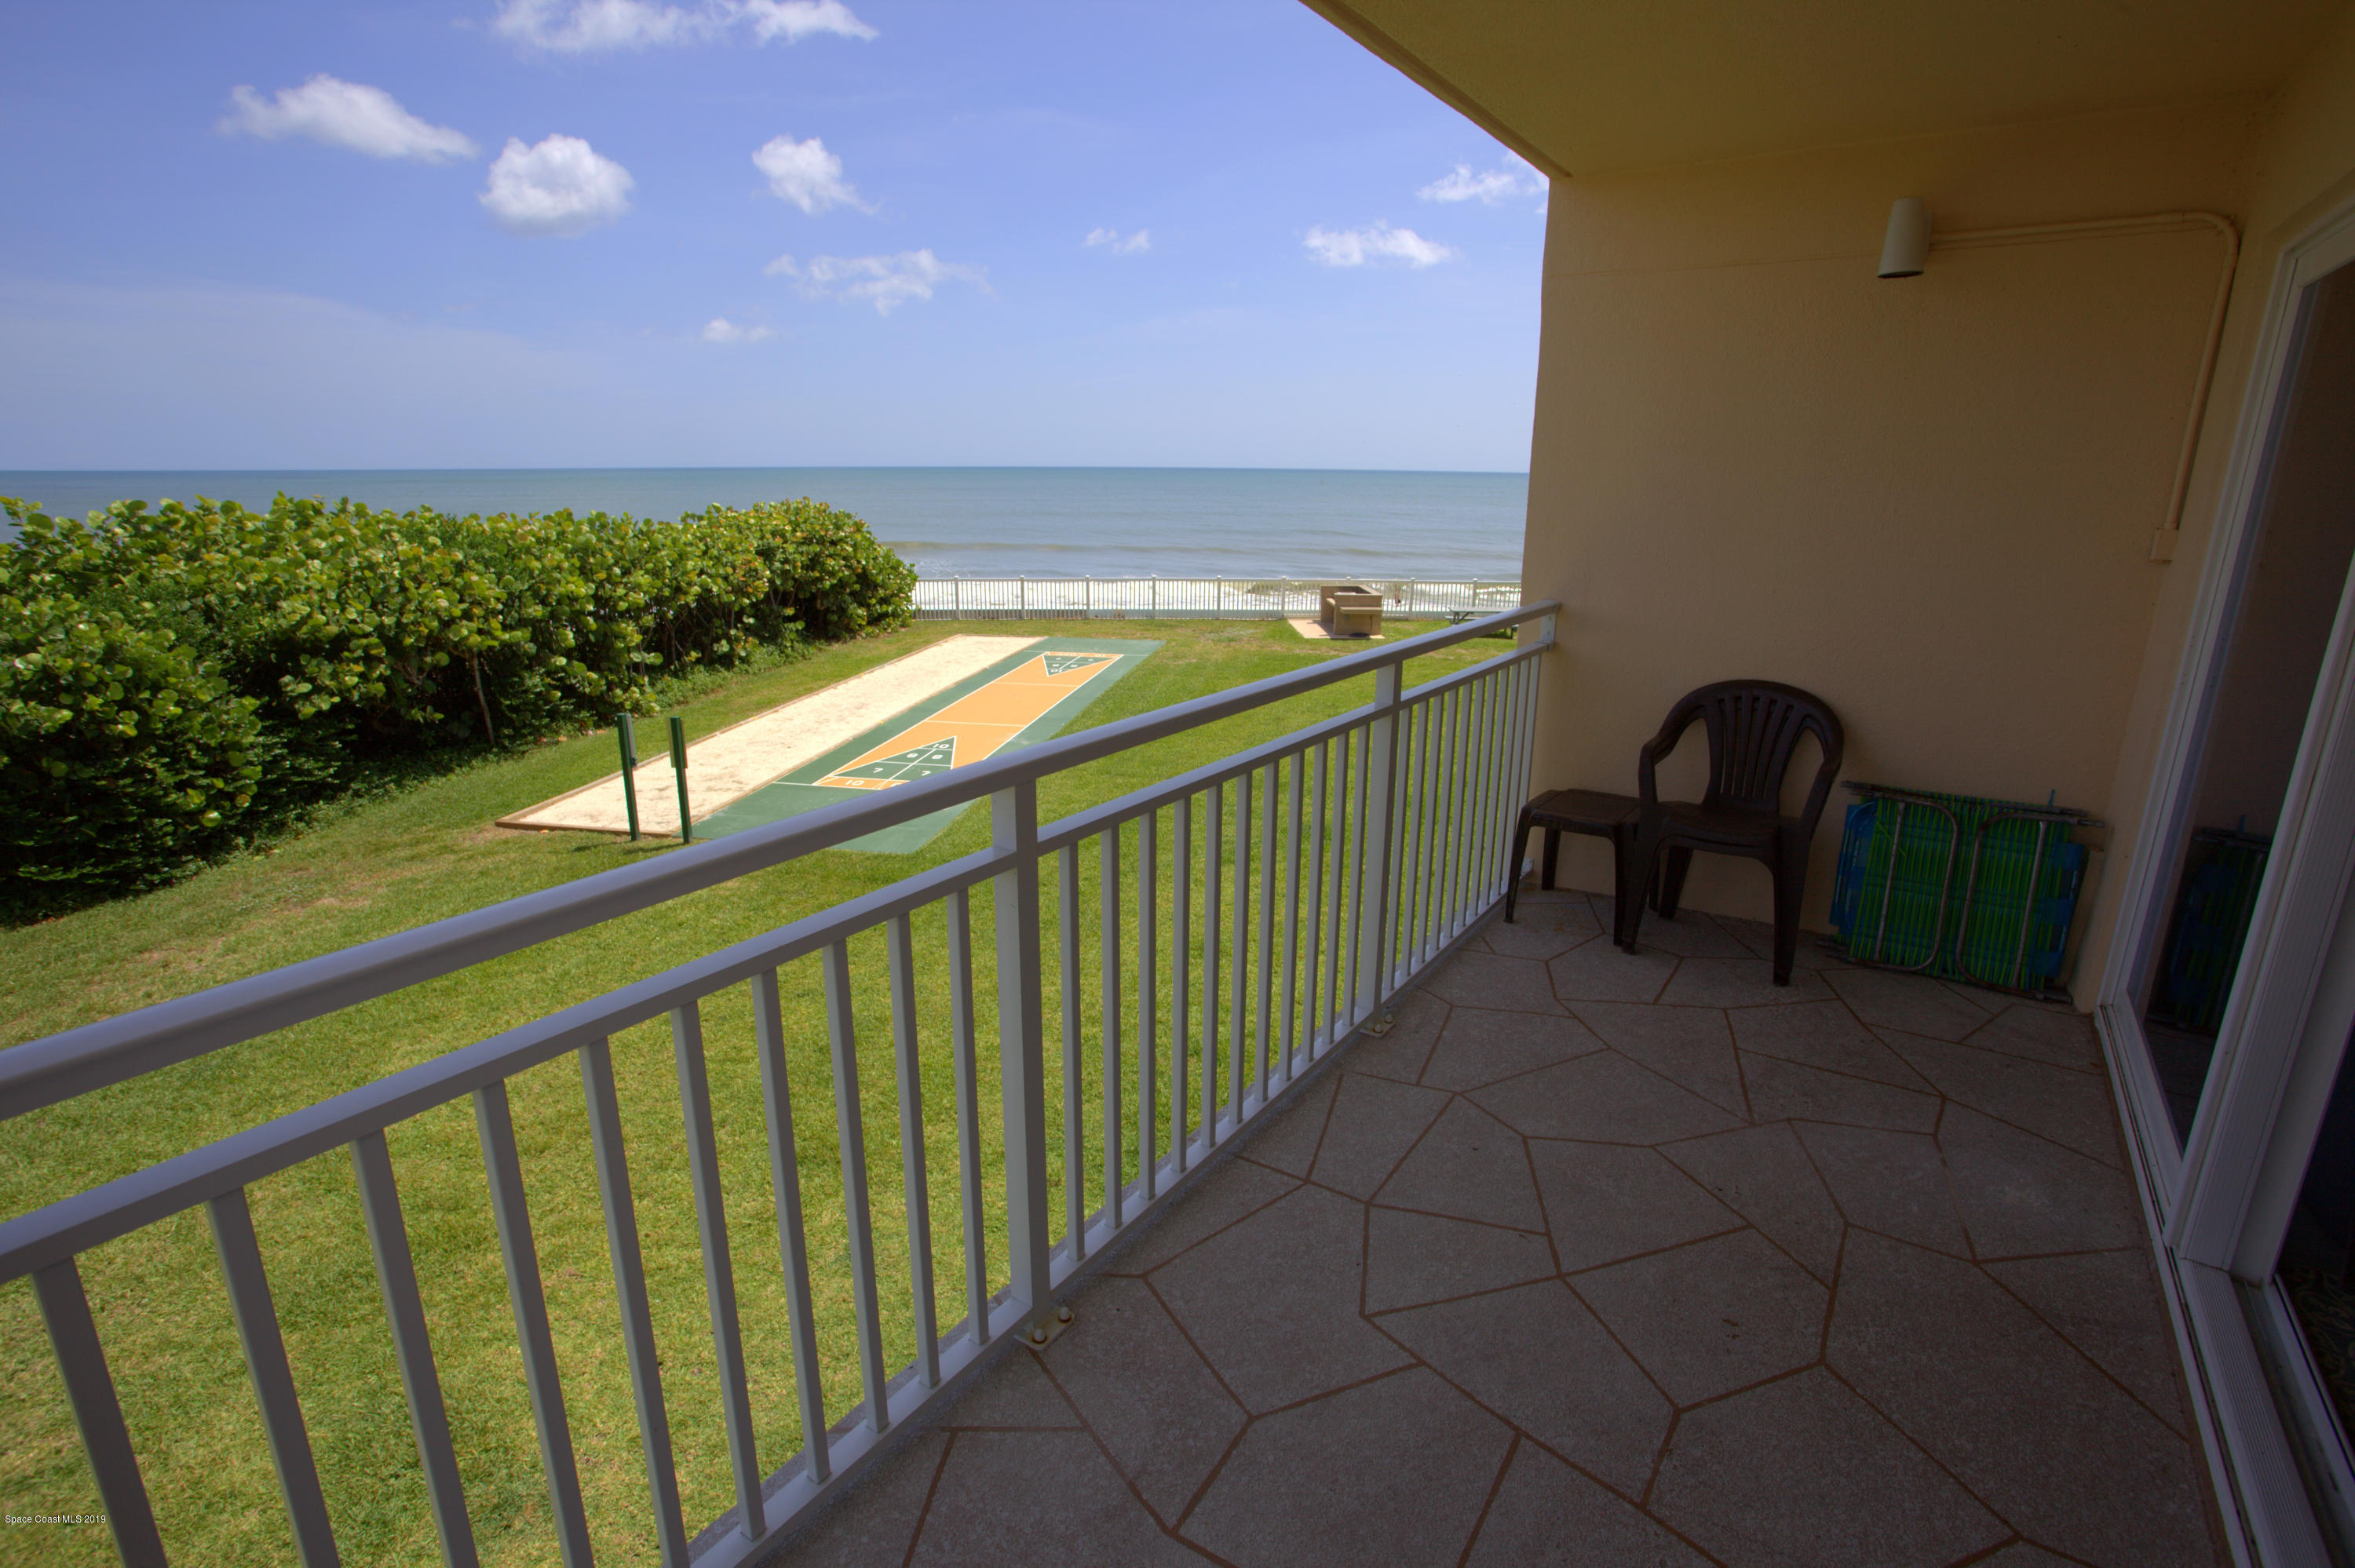 Single Family Homes for Sale at 975 Highway A1a Satellite Beach, Florida 32937 United States